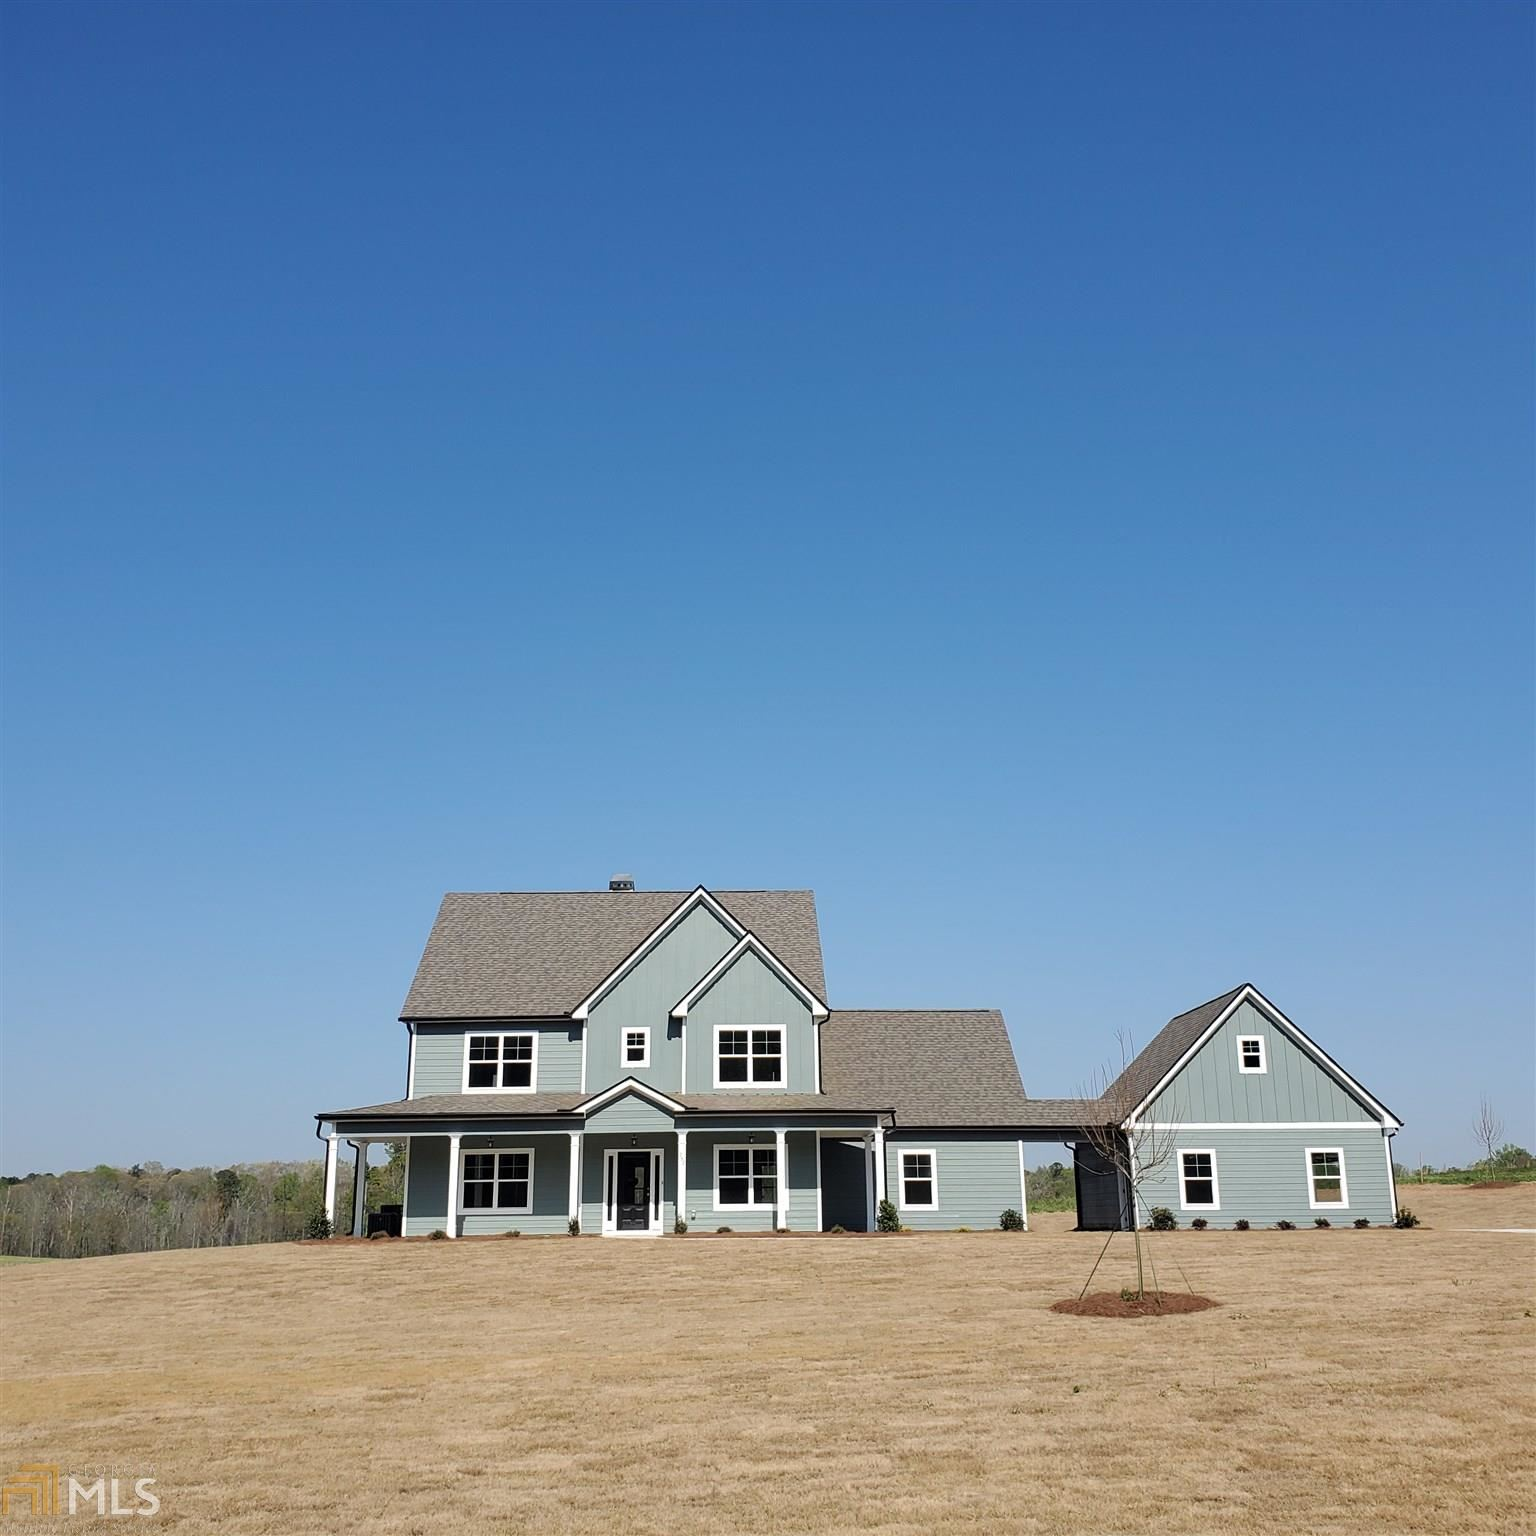 Lot 11 Marigold Farms, Senoia, GA 30276 - MLS#: 8849855